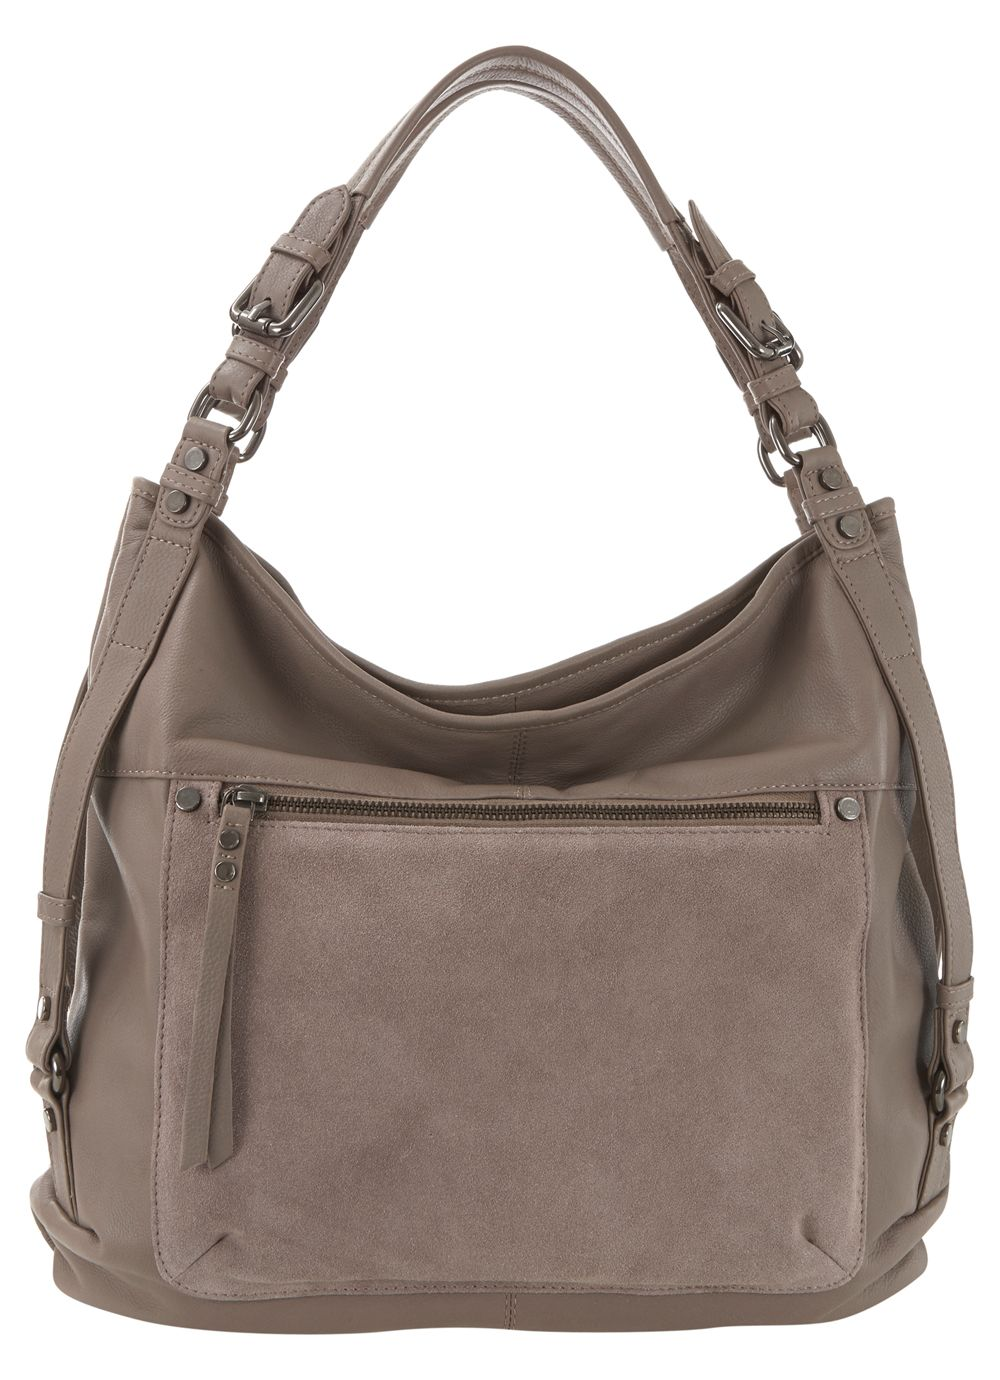 Mink paige hobo bag